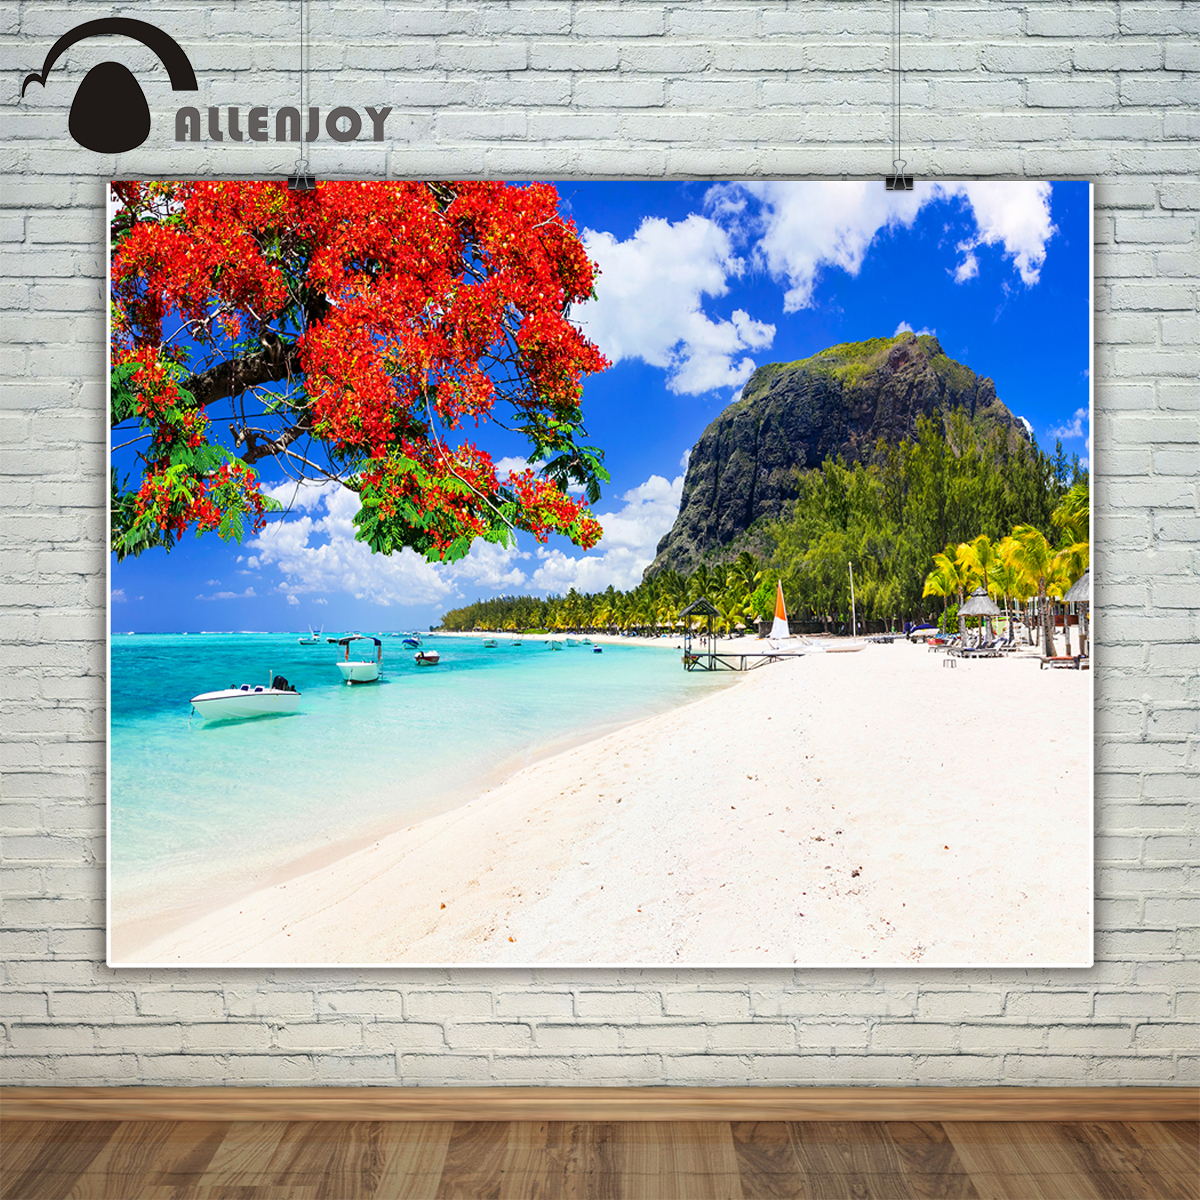 Allenjoy photography backdrop beautiful beaches sunny island tropical vacations background photo studio camera fotografica